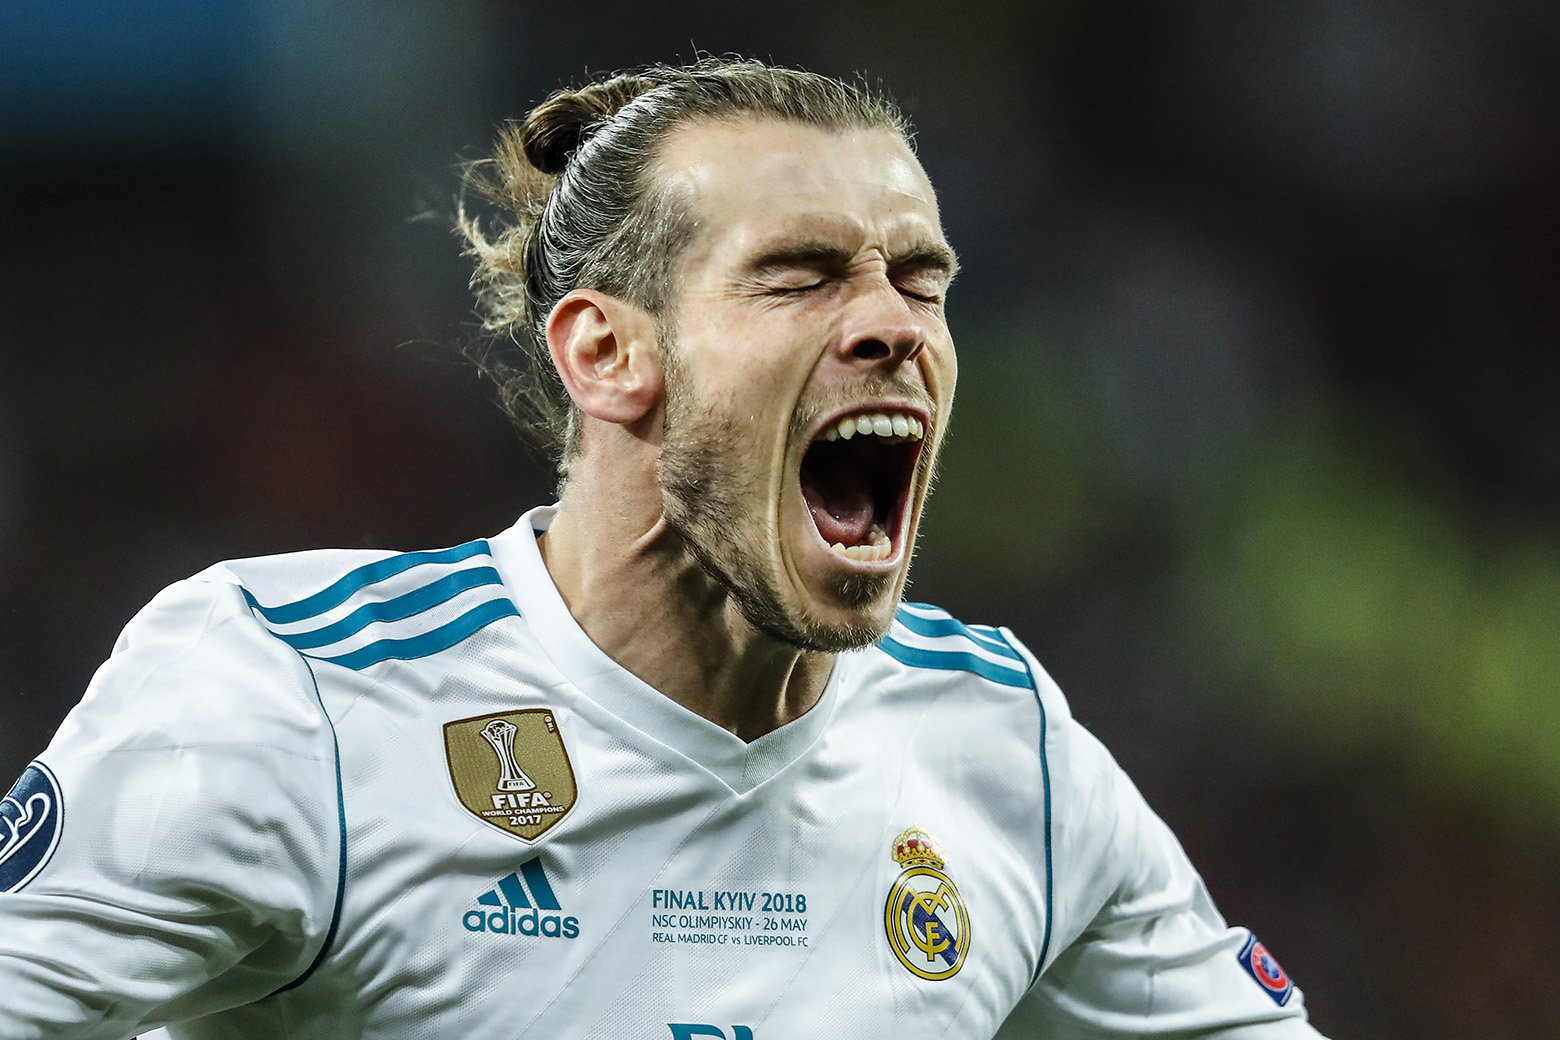 How would Gareth Bale fit in at Manchester United?